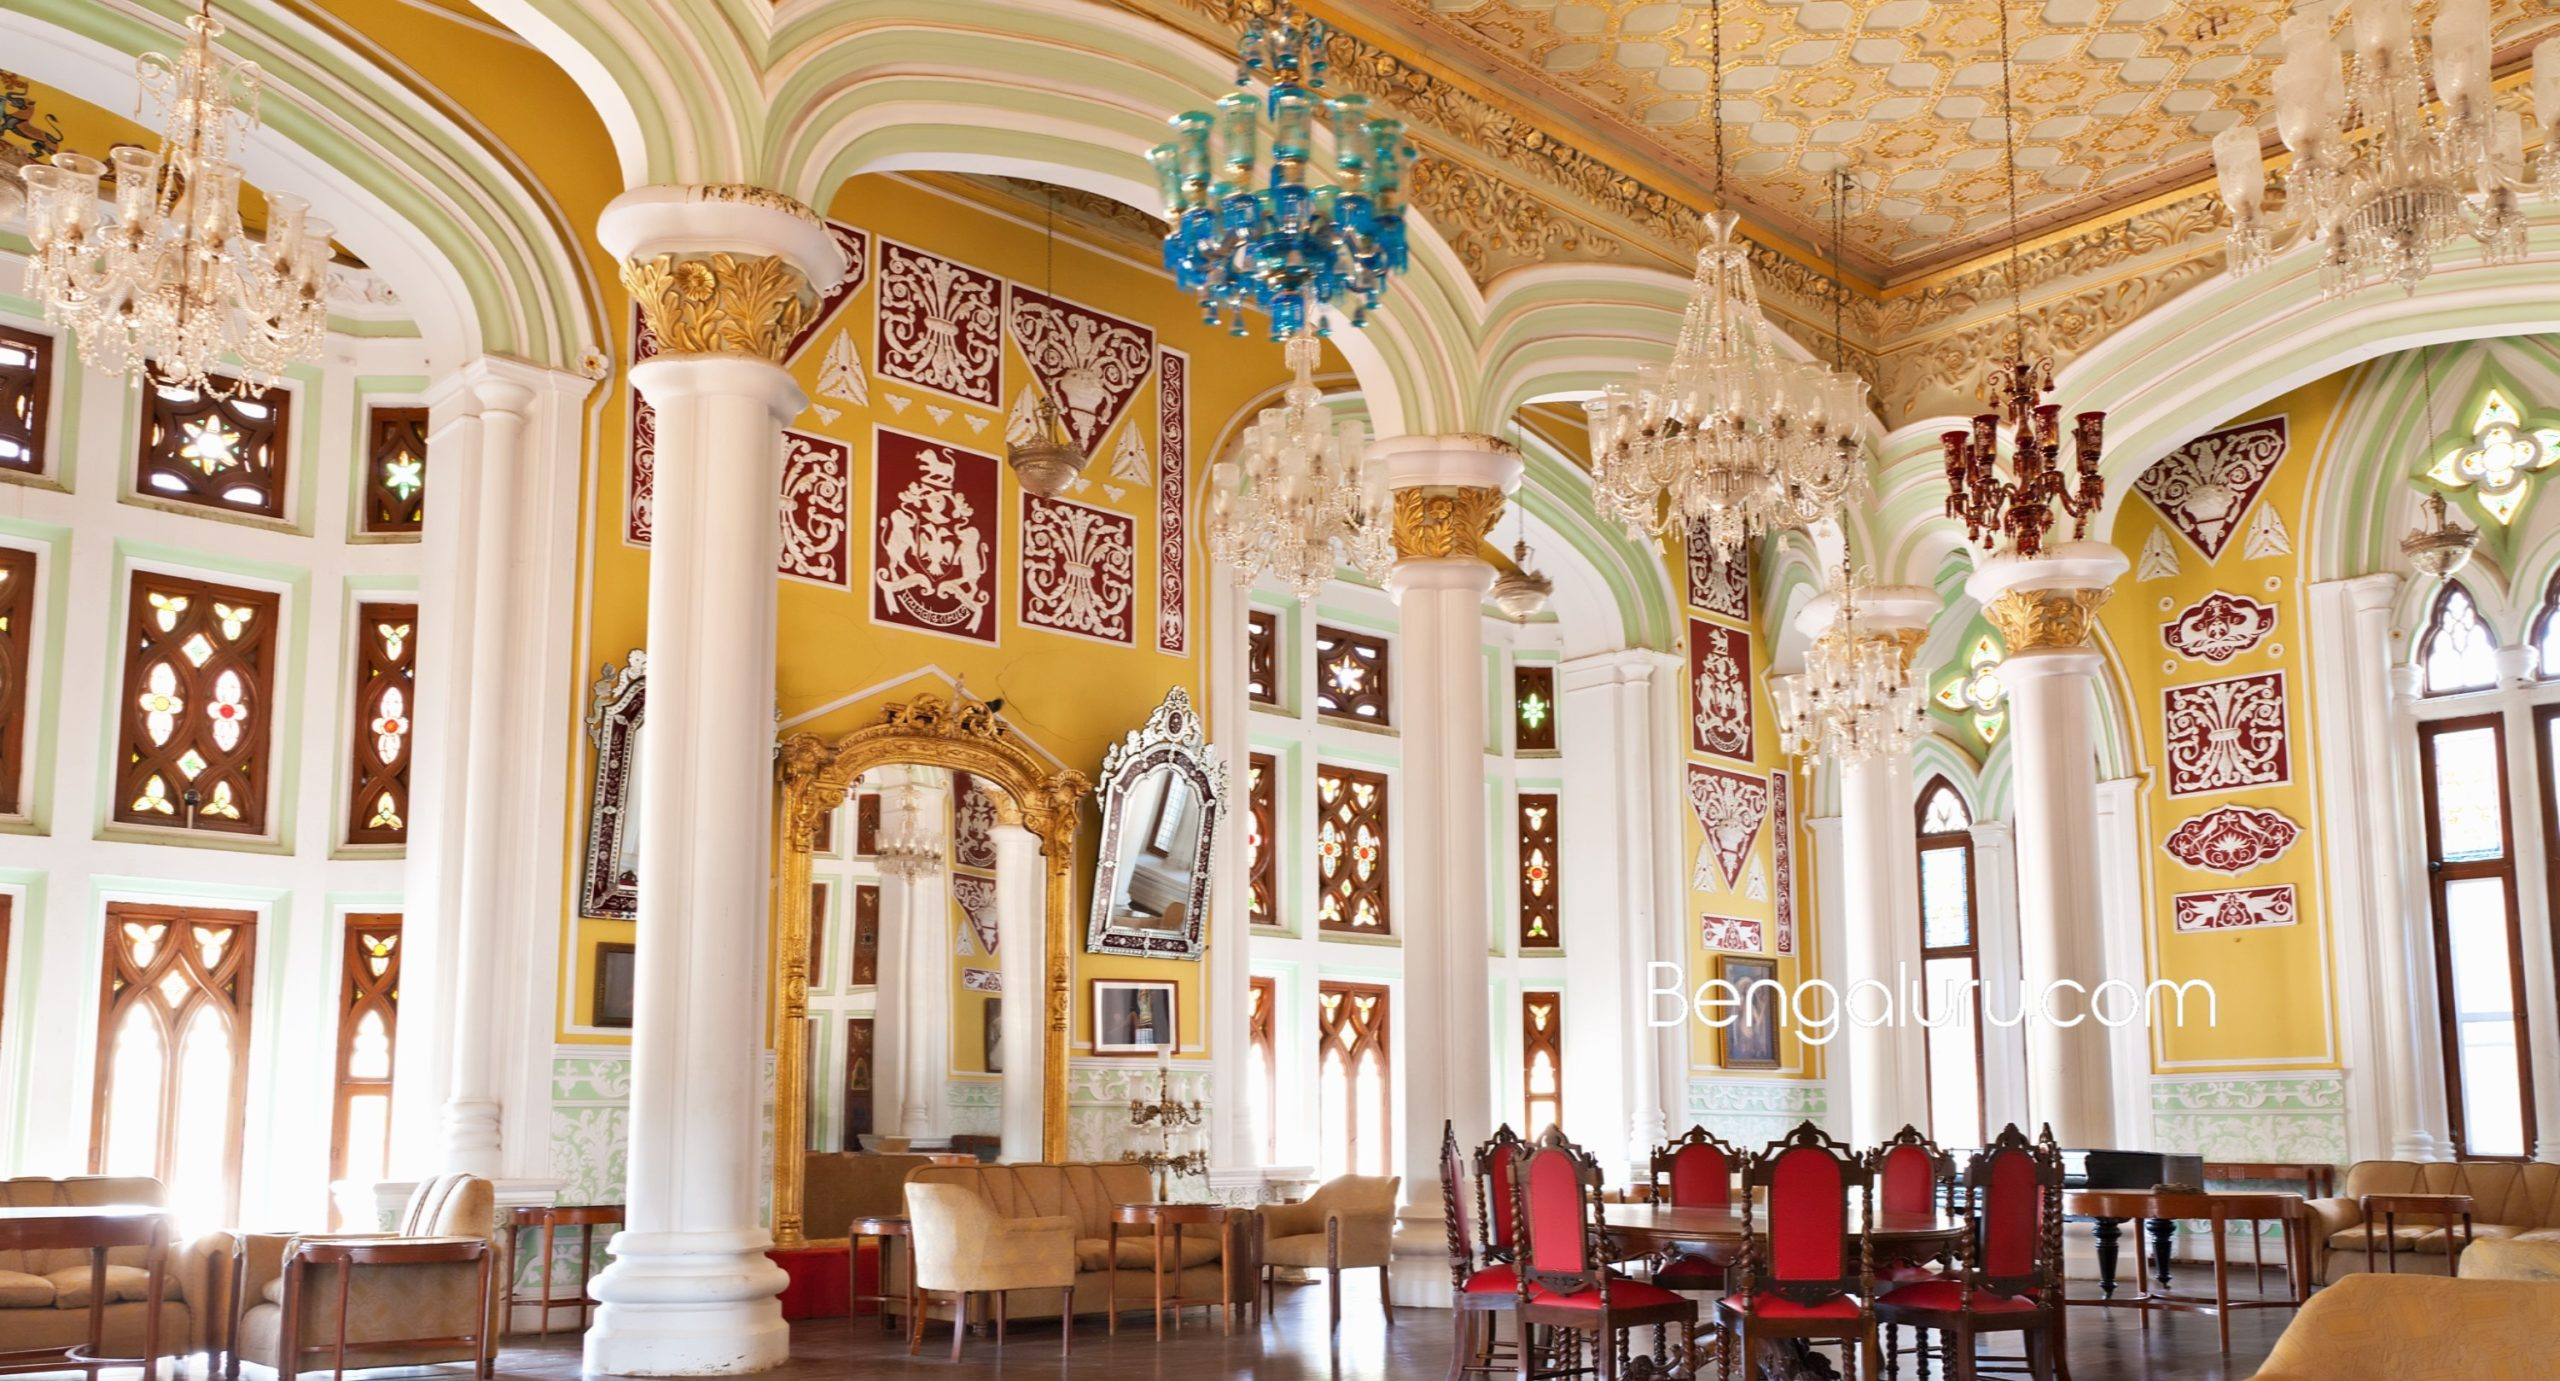 The splendor of Bengaluru Palace